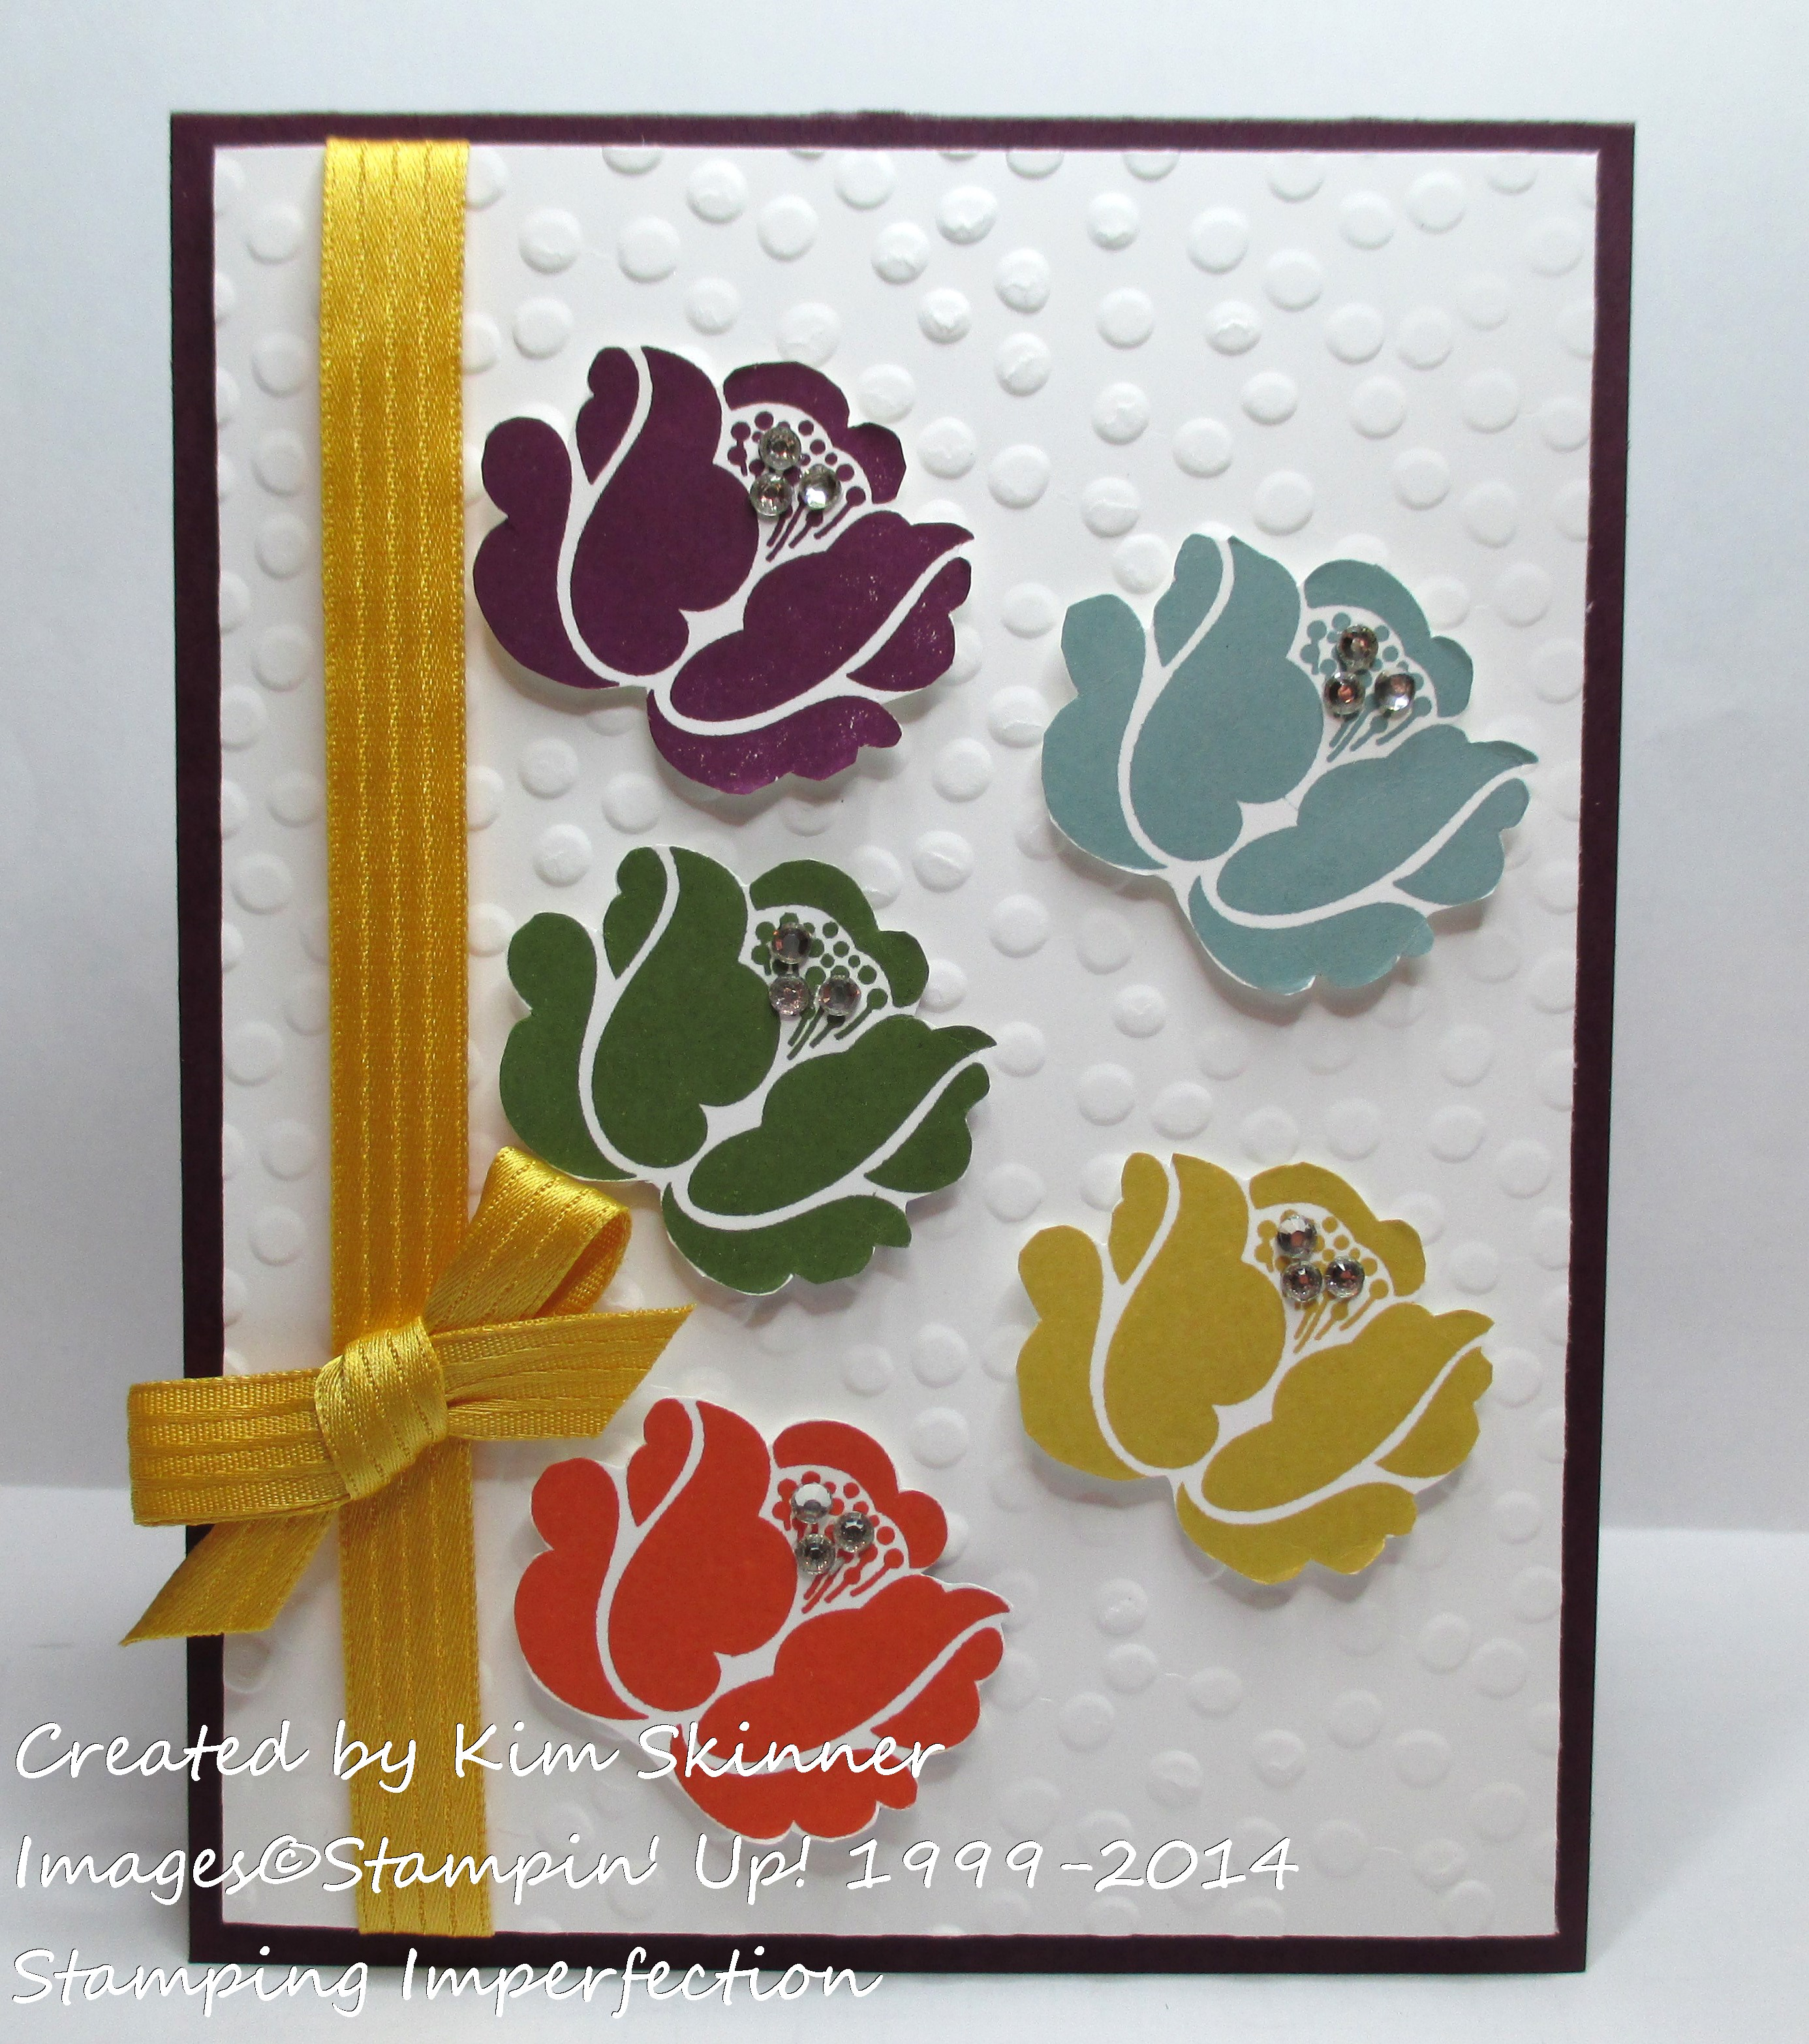 Stamping Imperfection In Colors 2014-2016